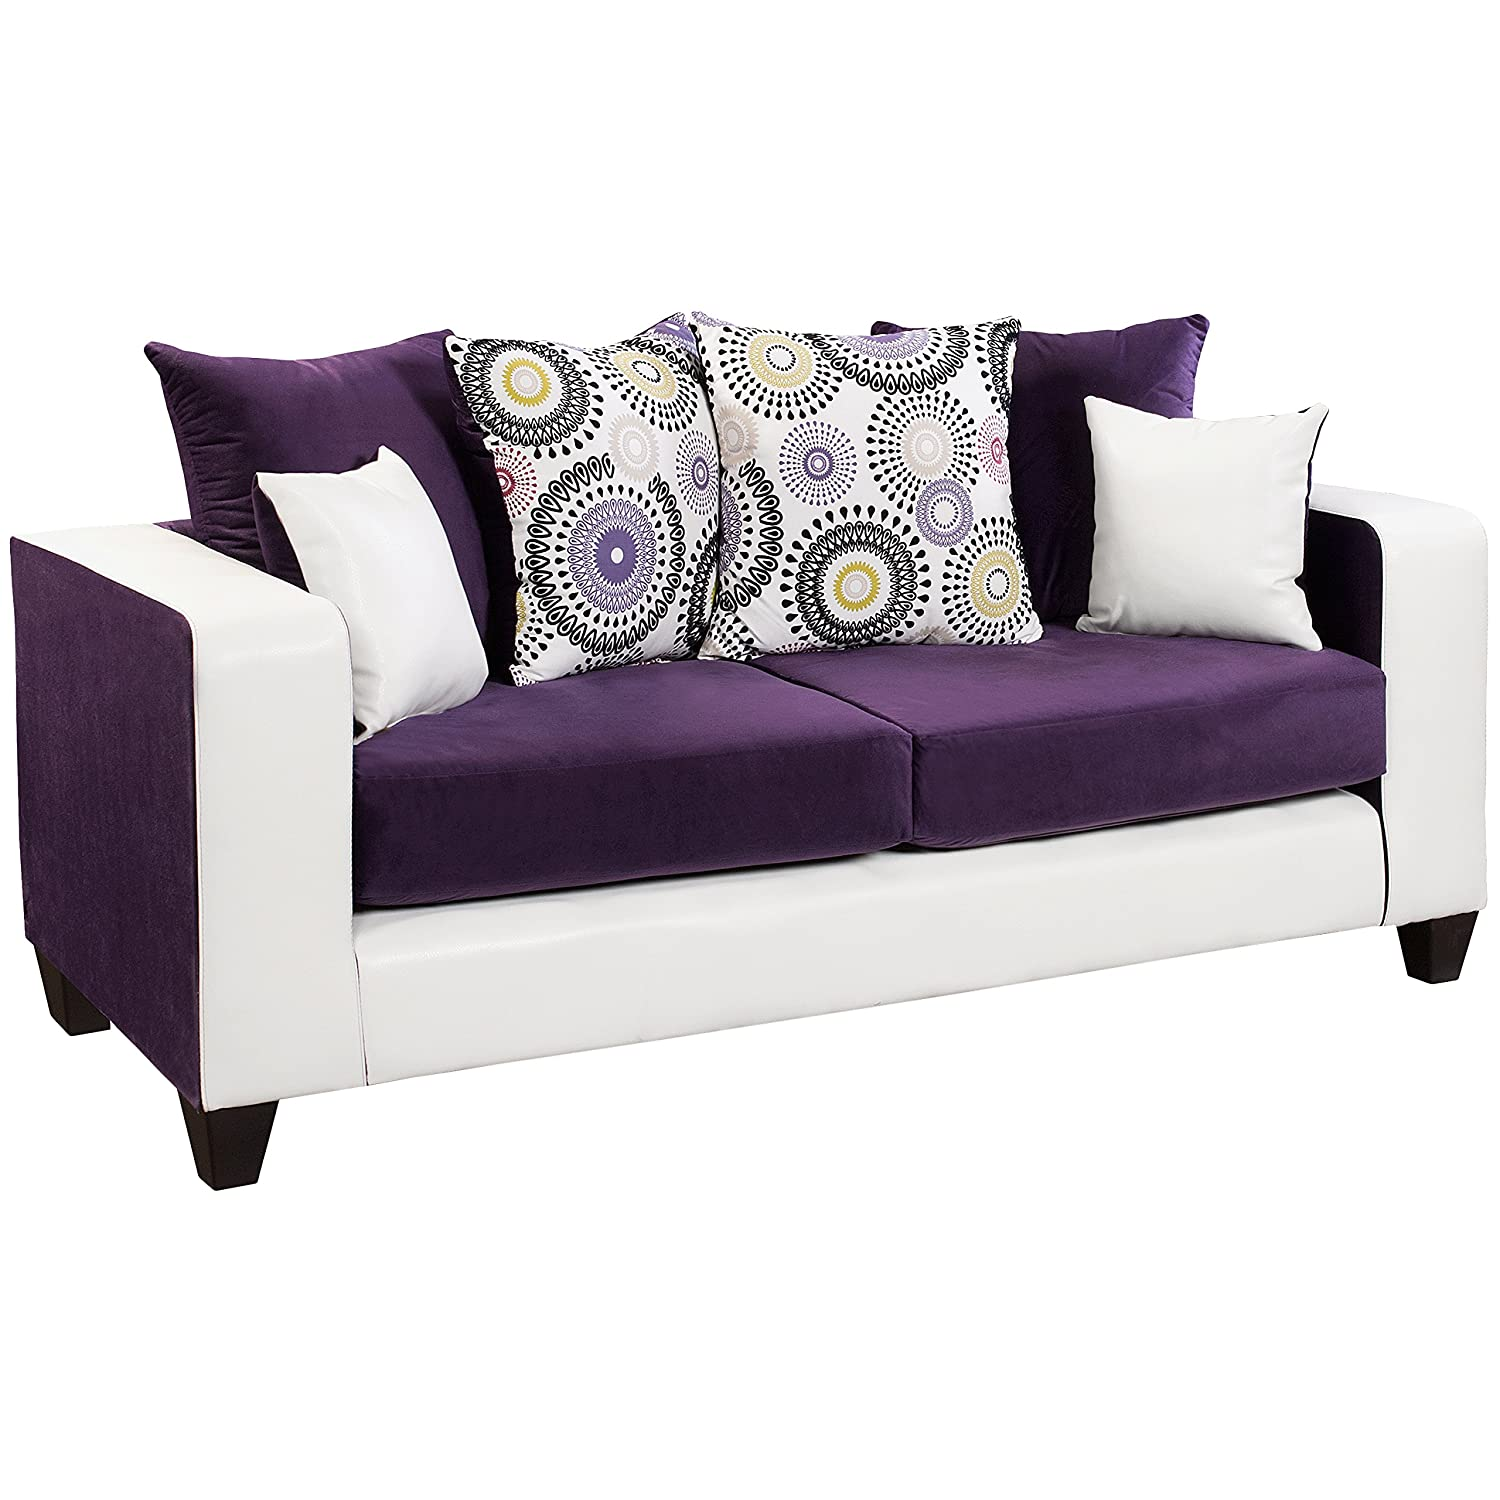 Amazon.com: Flash Furniture Riverstone Implosion Purple Velvet Sofa:  Kitchen U0026 Dining